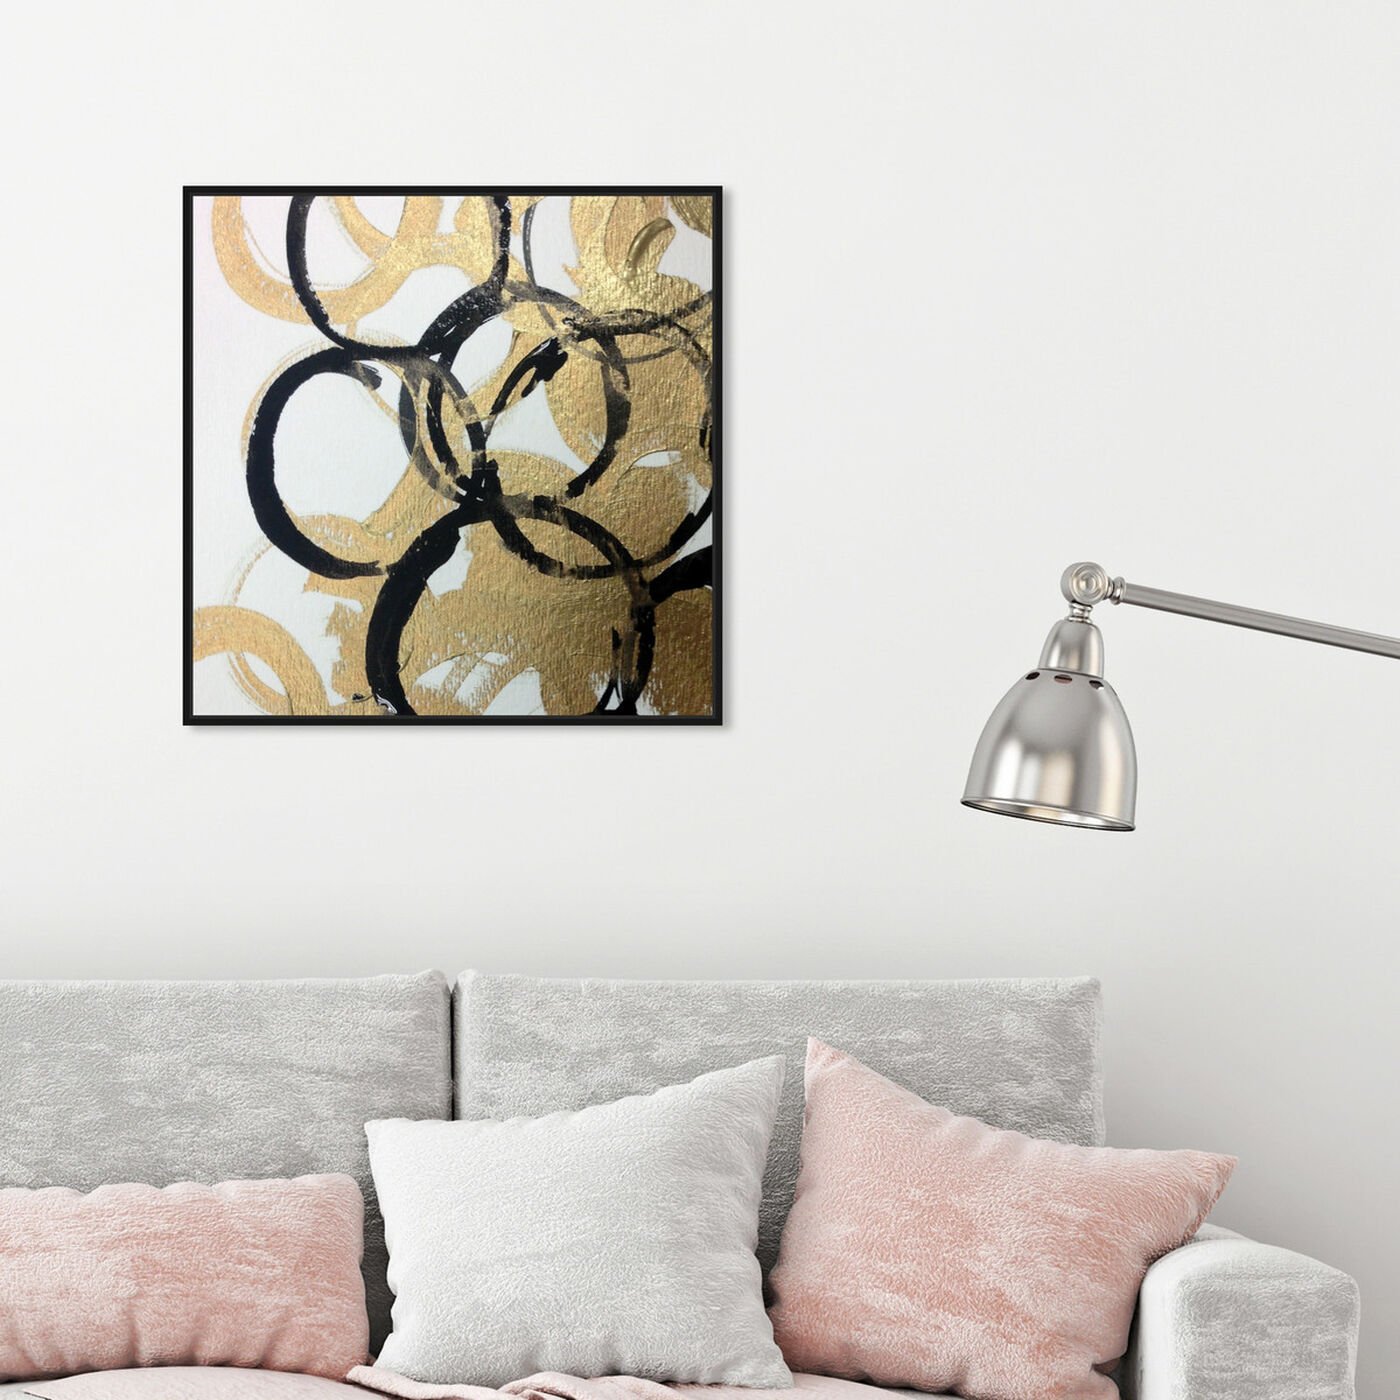 Hanging view of Burana featuring abstract and shapes art.